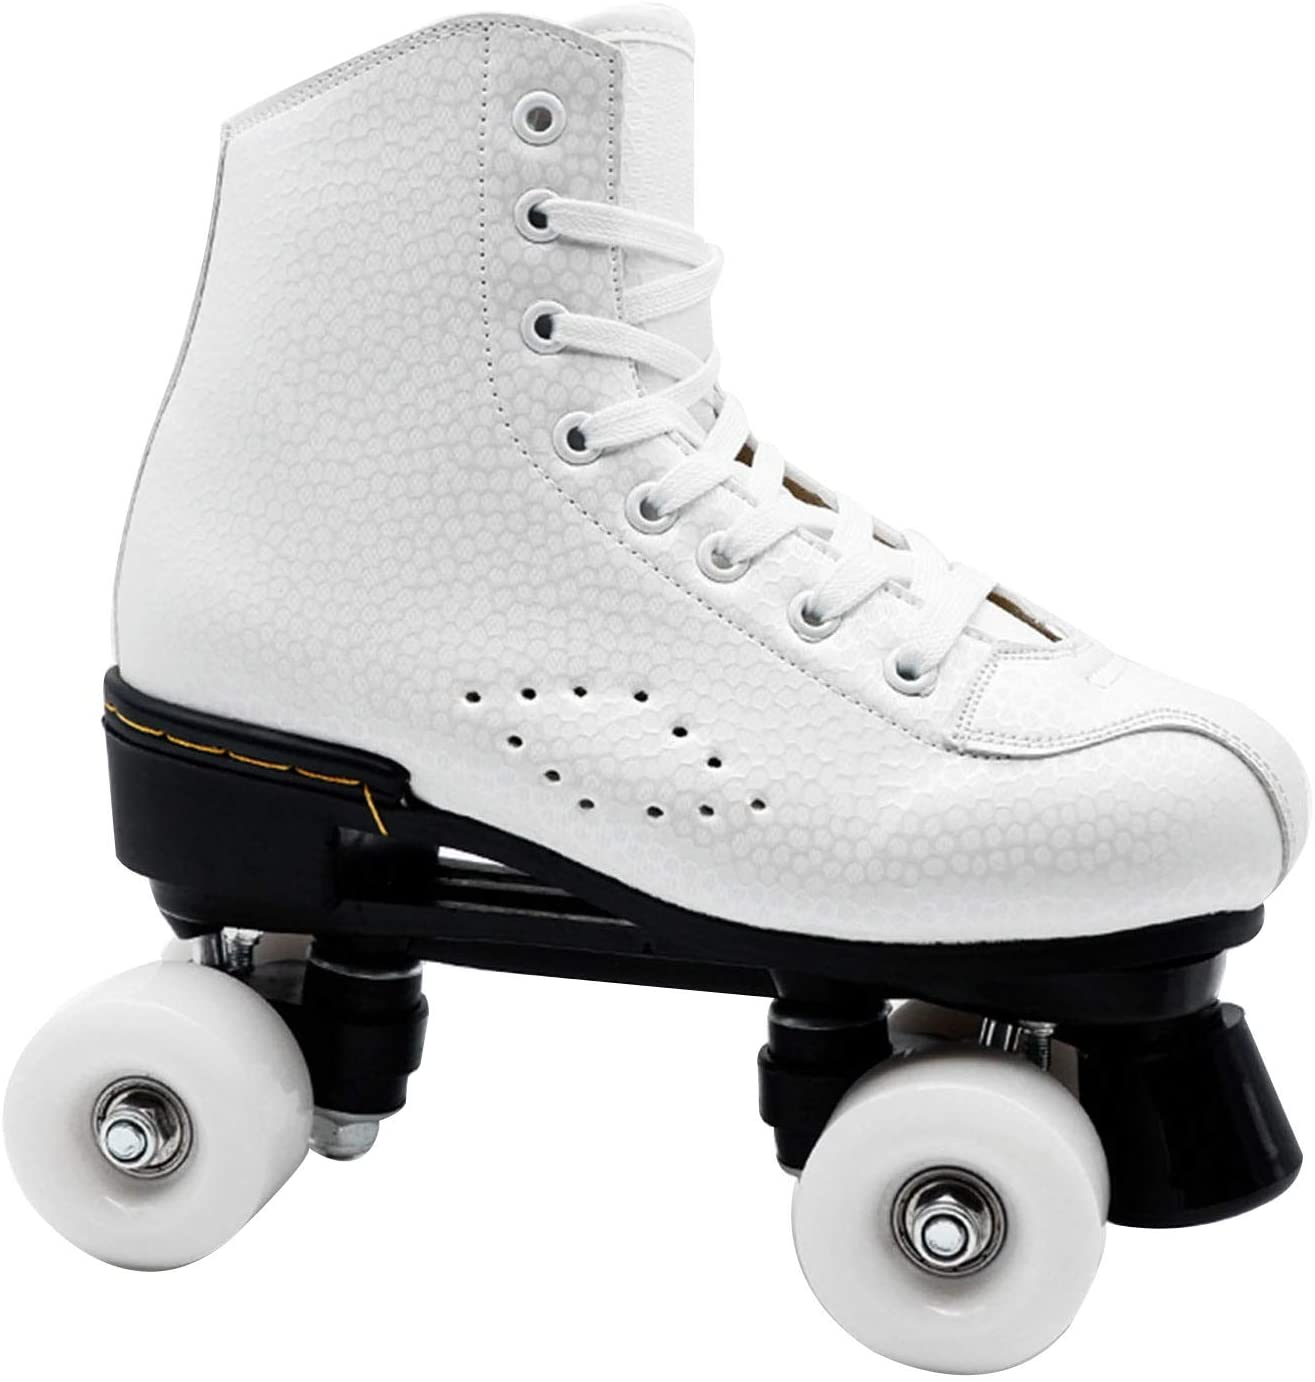 QSSM Roller Skates for Women PU Leather 4 Wheels Double Row Indoor Outdoor Roller Skate Shoes for Women Men Adult